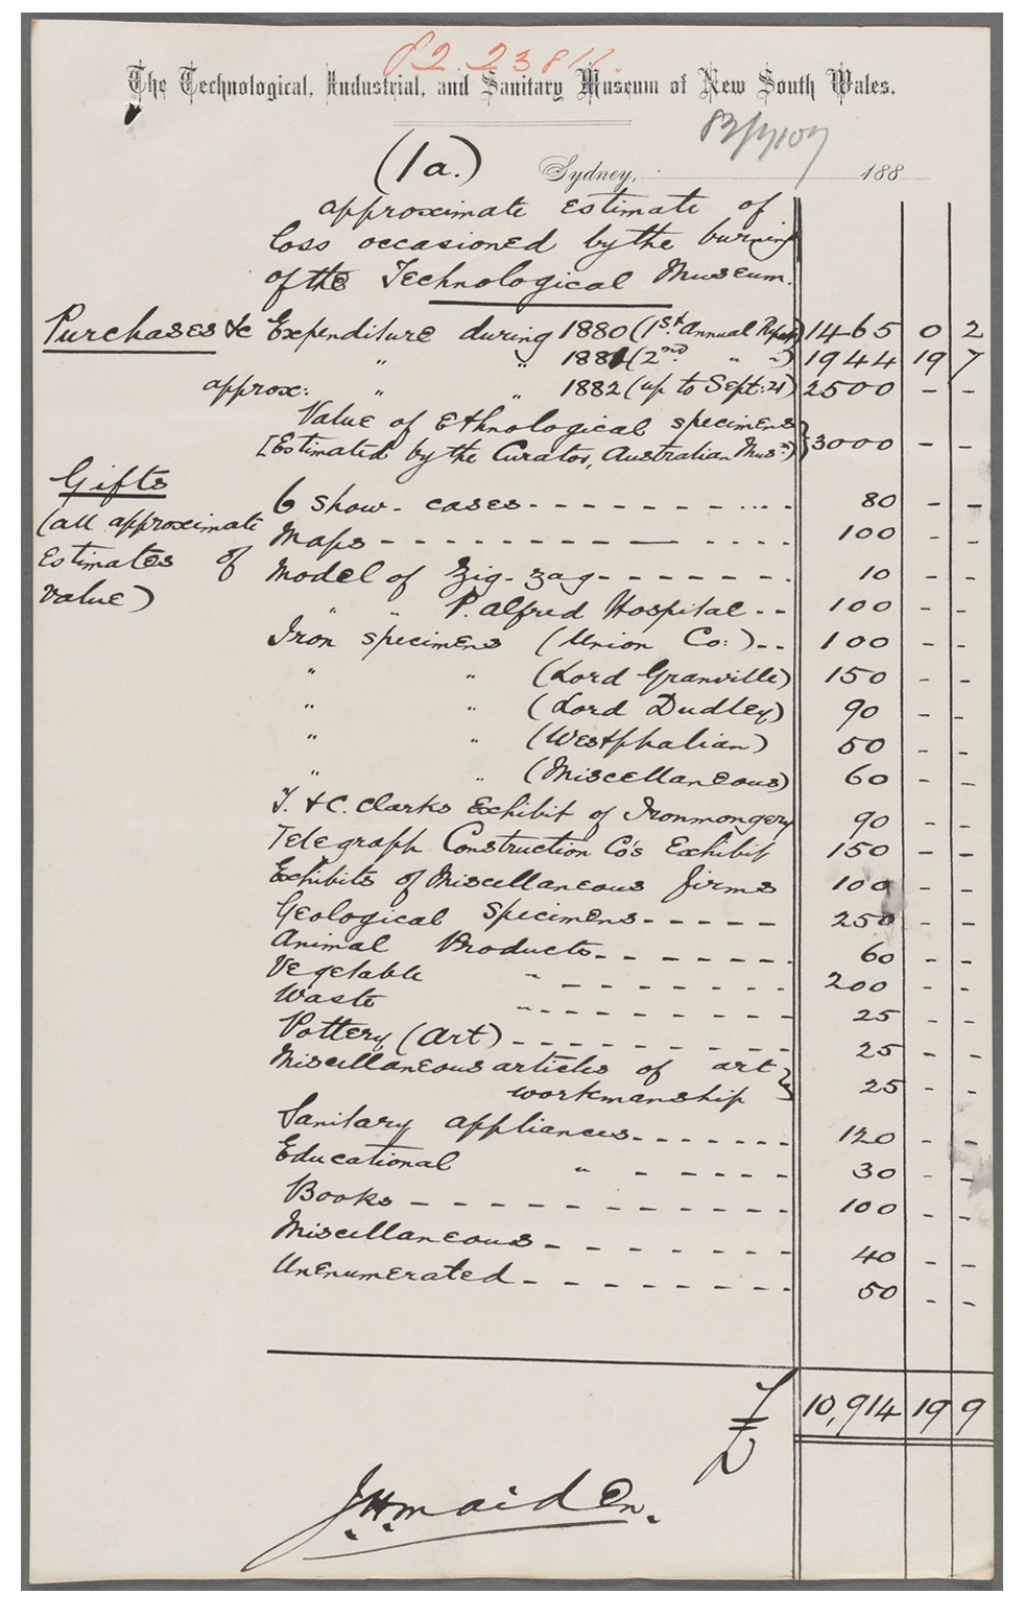 Approximate Estimate of Loss Occasioned by the burning of the Technological Museum, 1882. NRS 906 1-2527.2